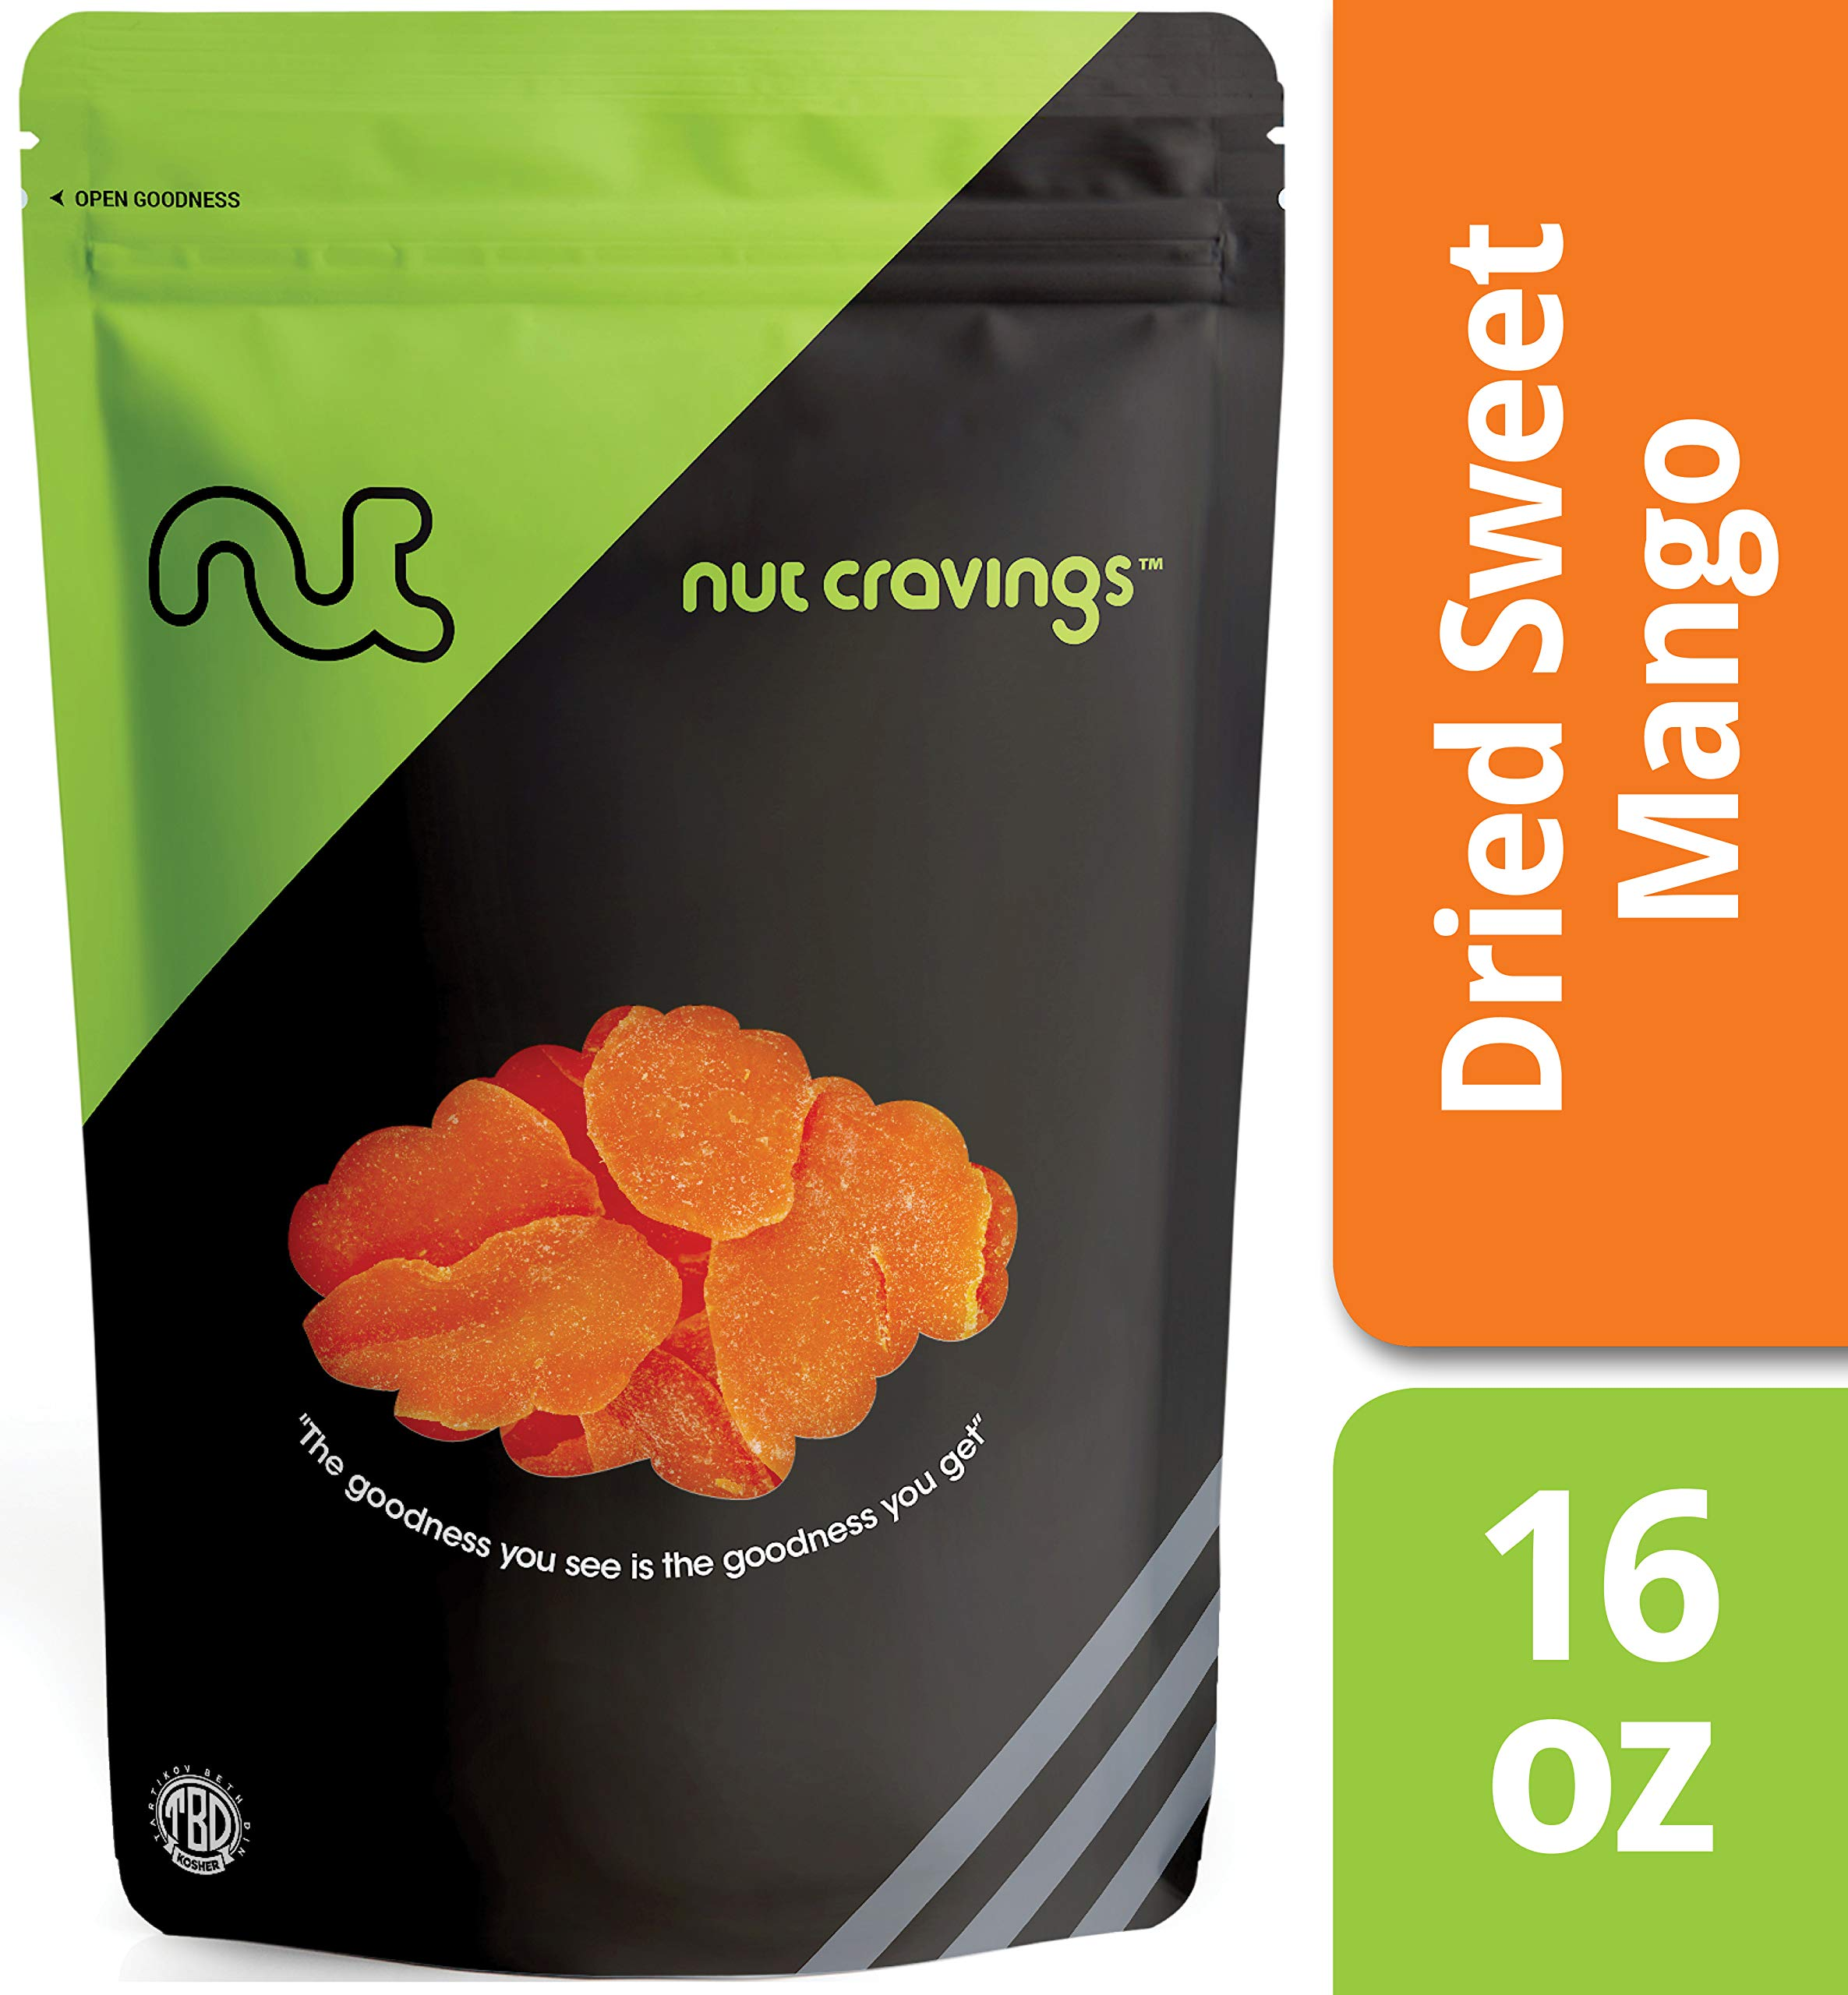 Nut Cravings Dried Mango Slices (1 Pound) - Sweet, Healthy Dehydrated Fruit Snacks - 16 Ounce by Nut Cravings